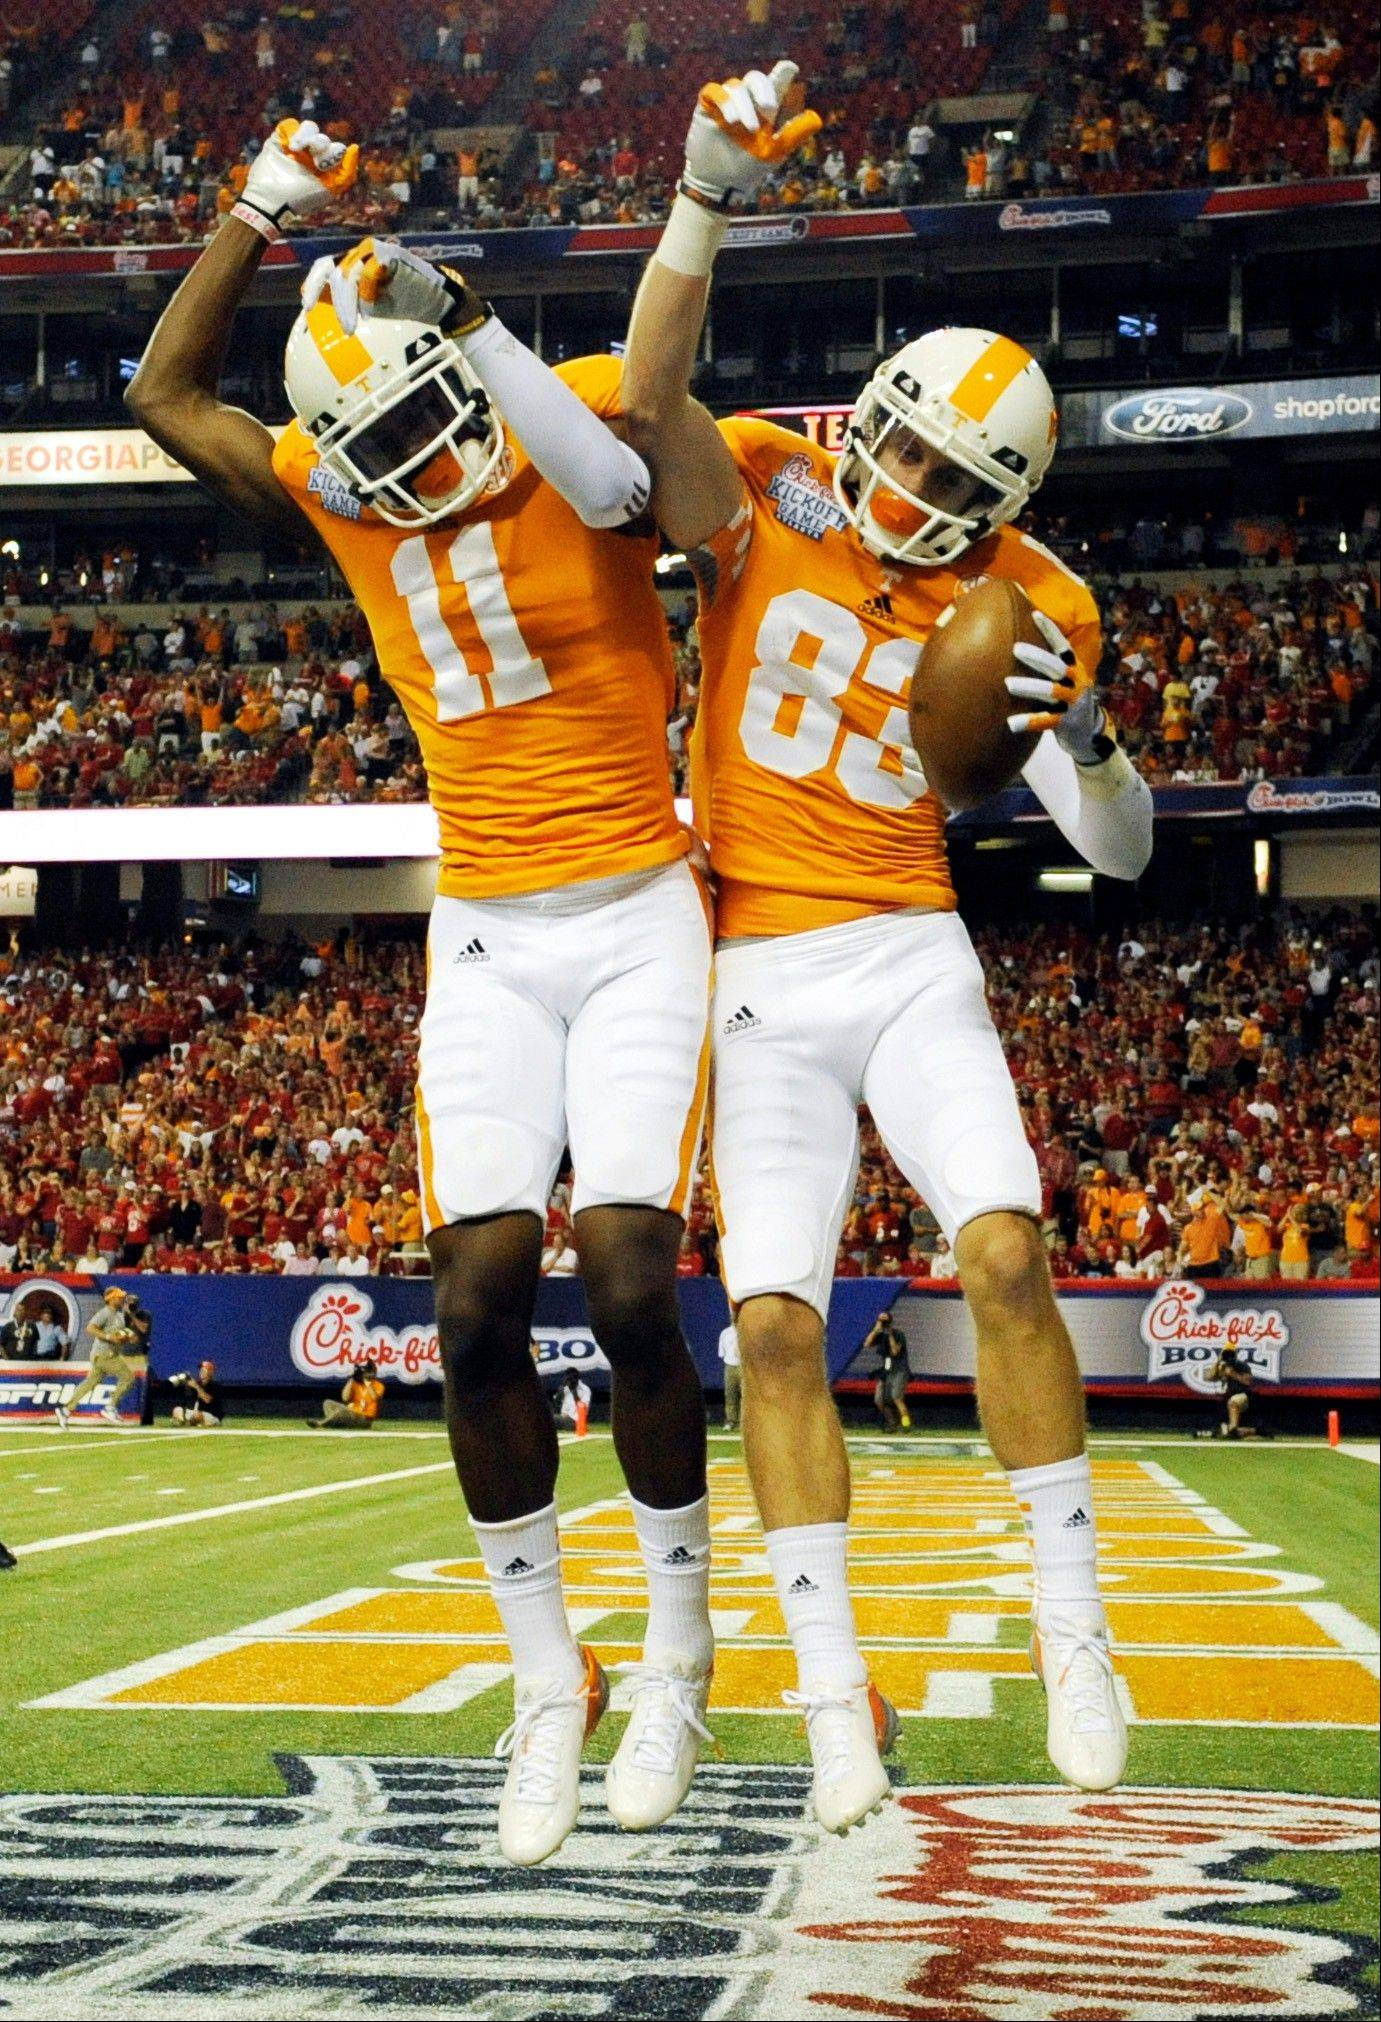 Tennessee wide receiver Zach Rogers (83) celebrates his first quarter touchdown reception with teammate Justin Hunter against North Carolina State on Friday in the Chick-fil-A Kickoff Game in Atlanta.